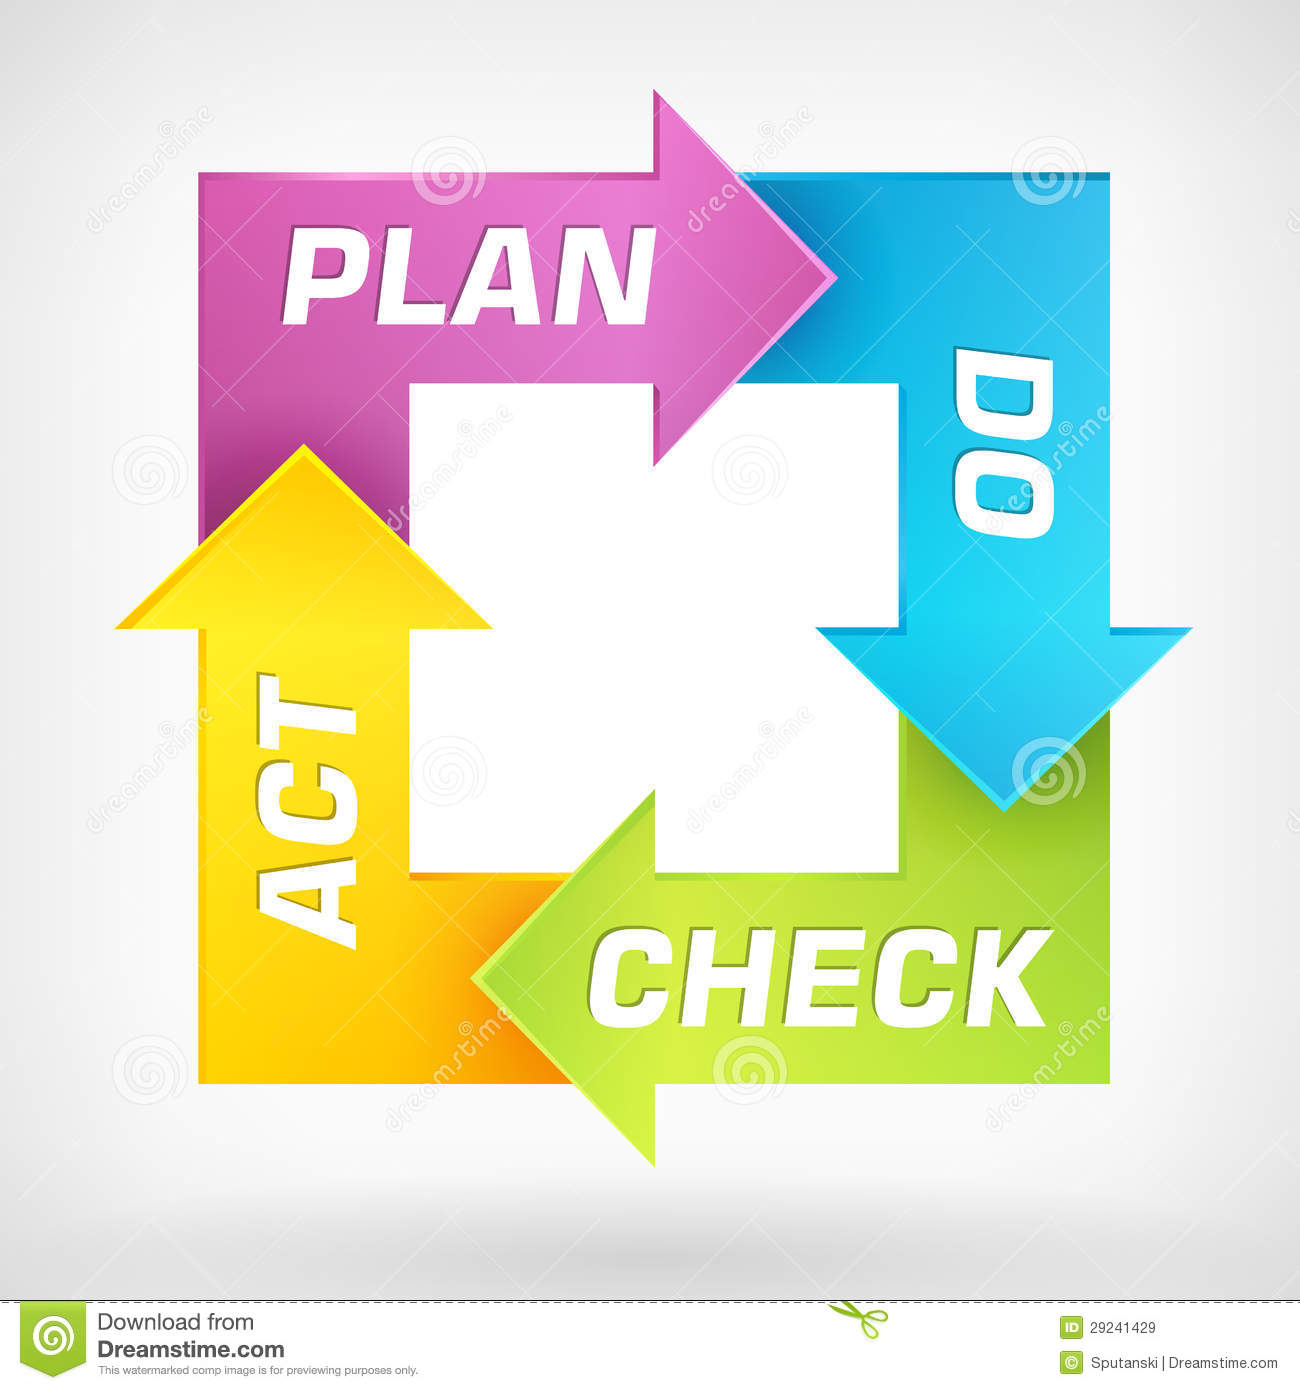 how to check the plan